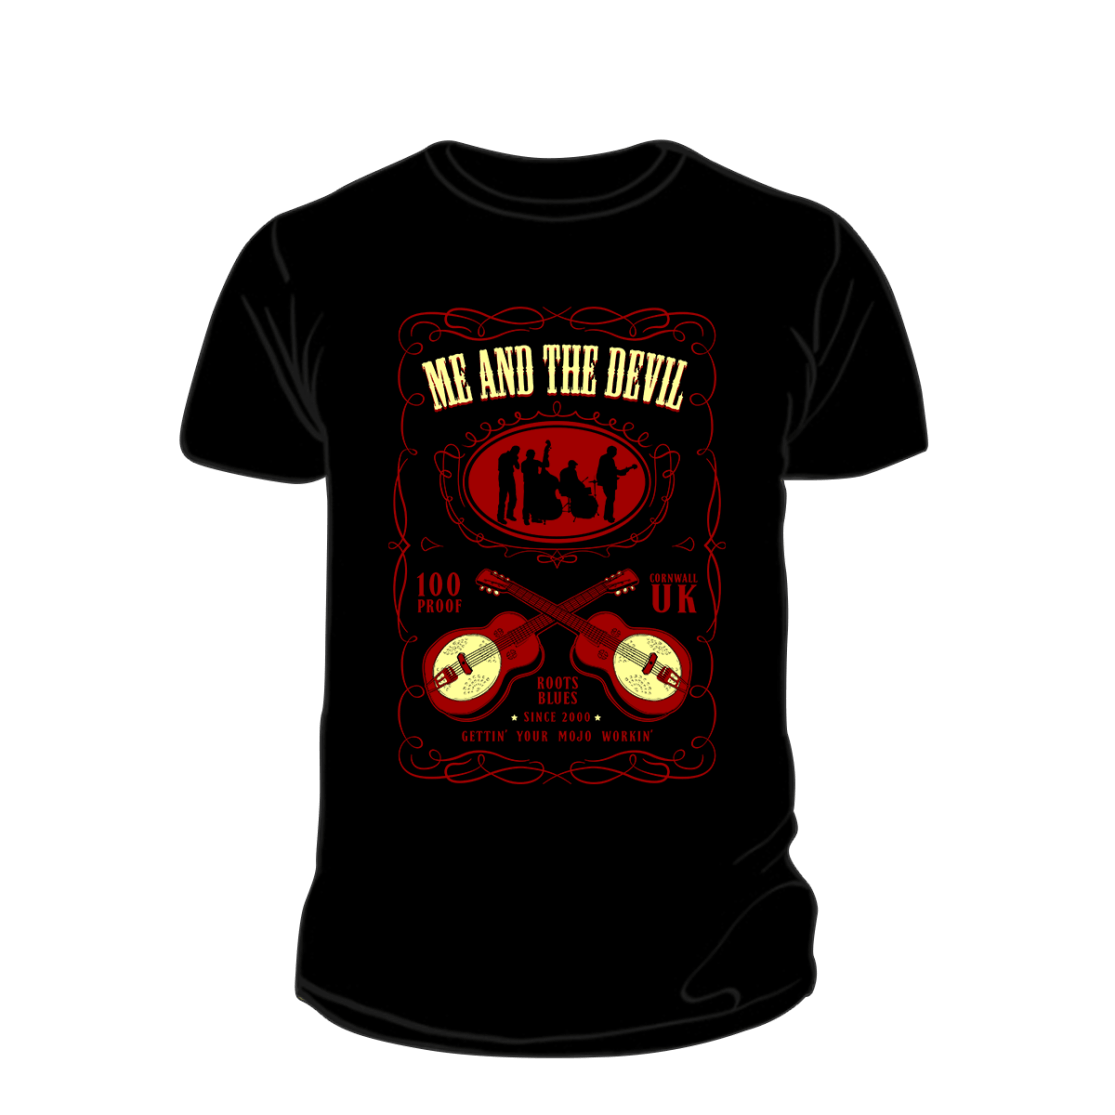 Me and The Devil - Whiskey T-shirt